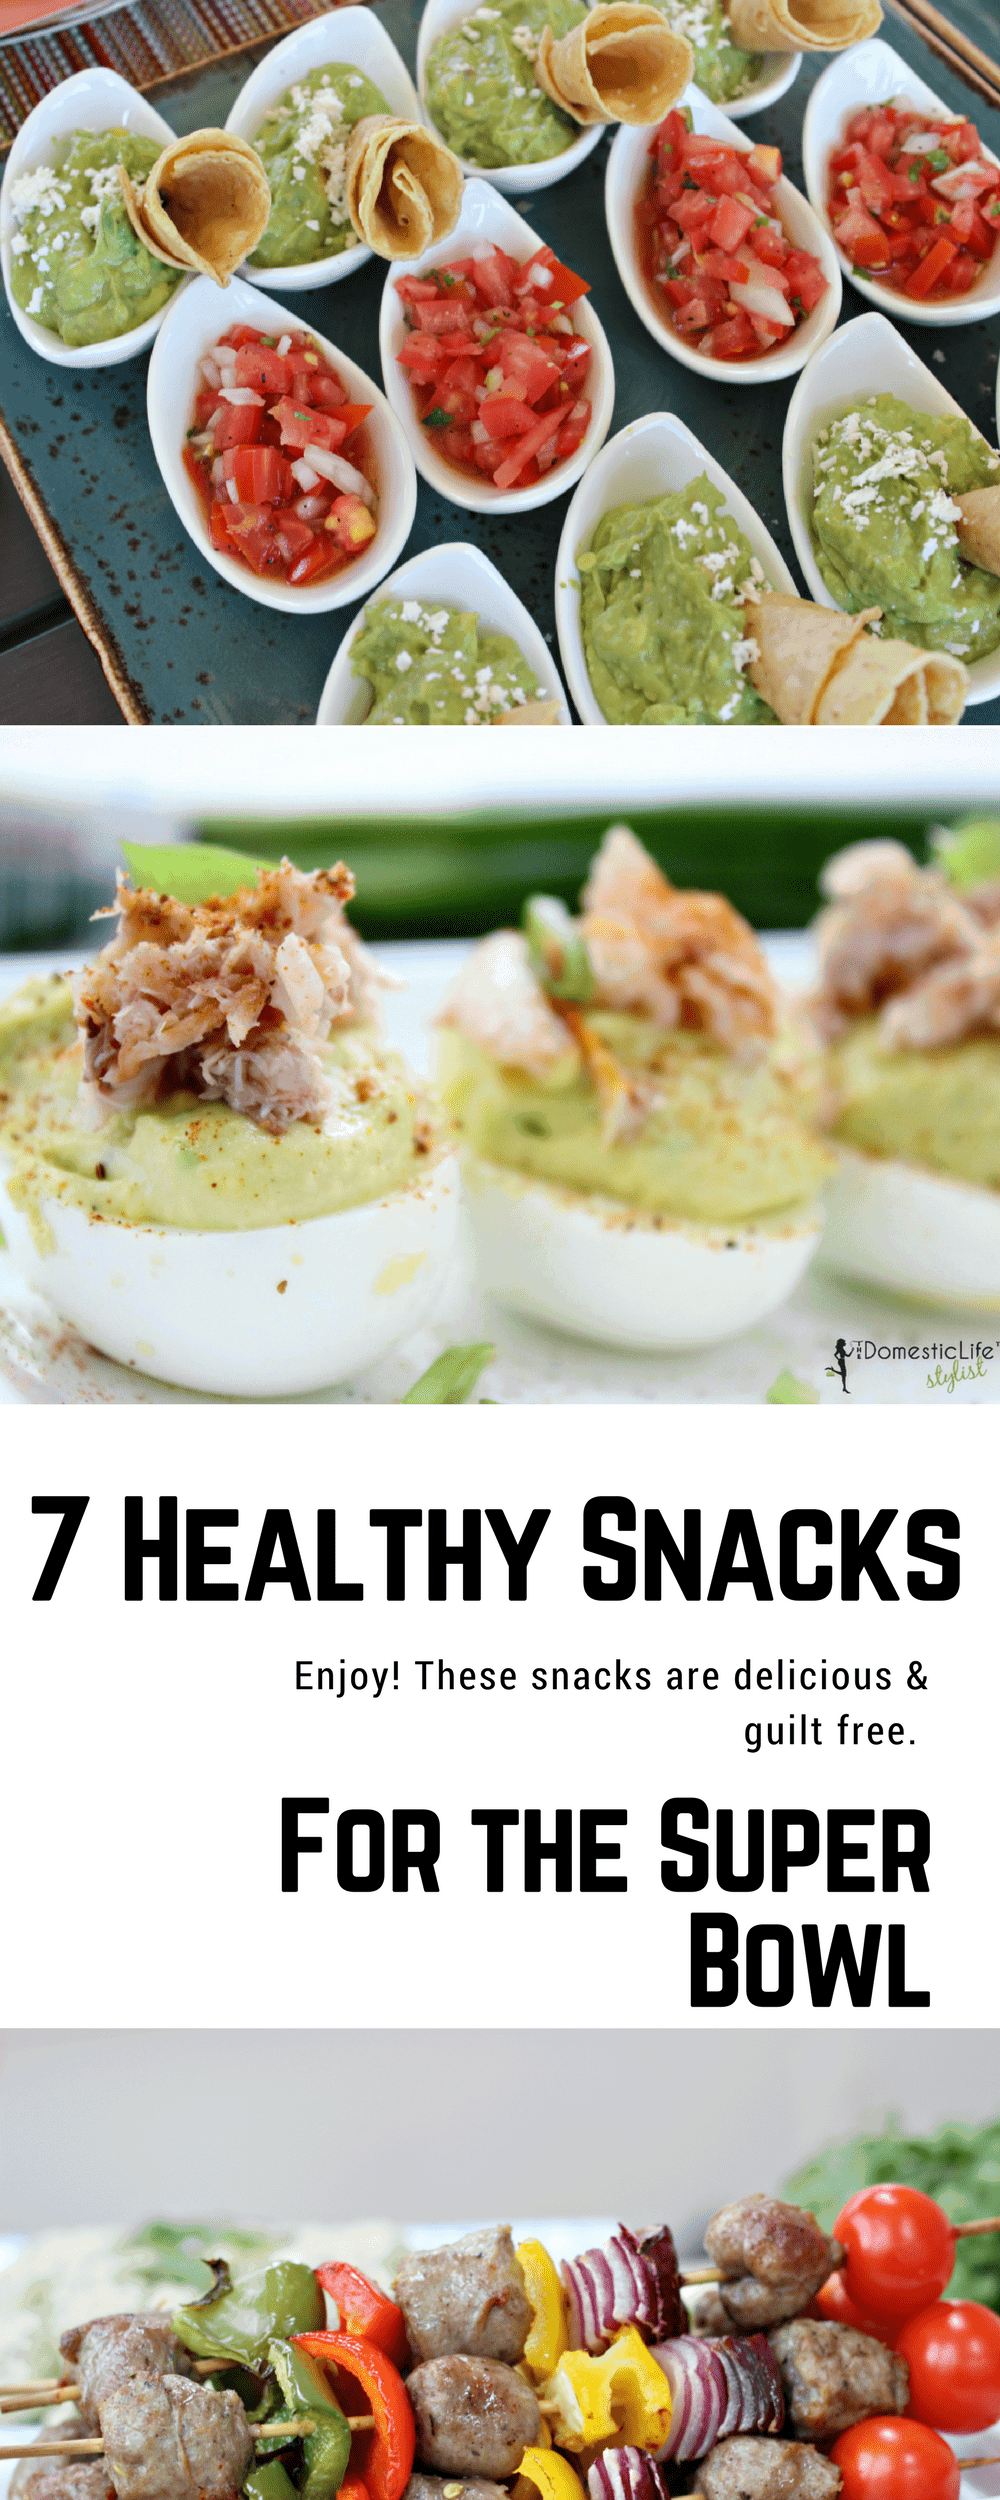 Healthy and Gluten-Free Super Bowl Snacks